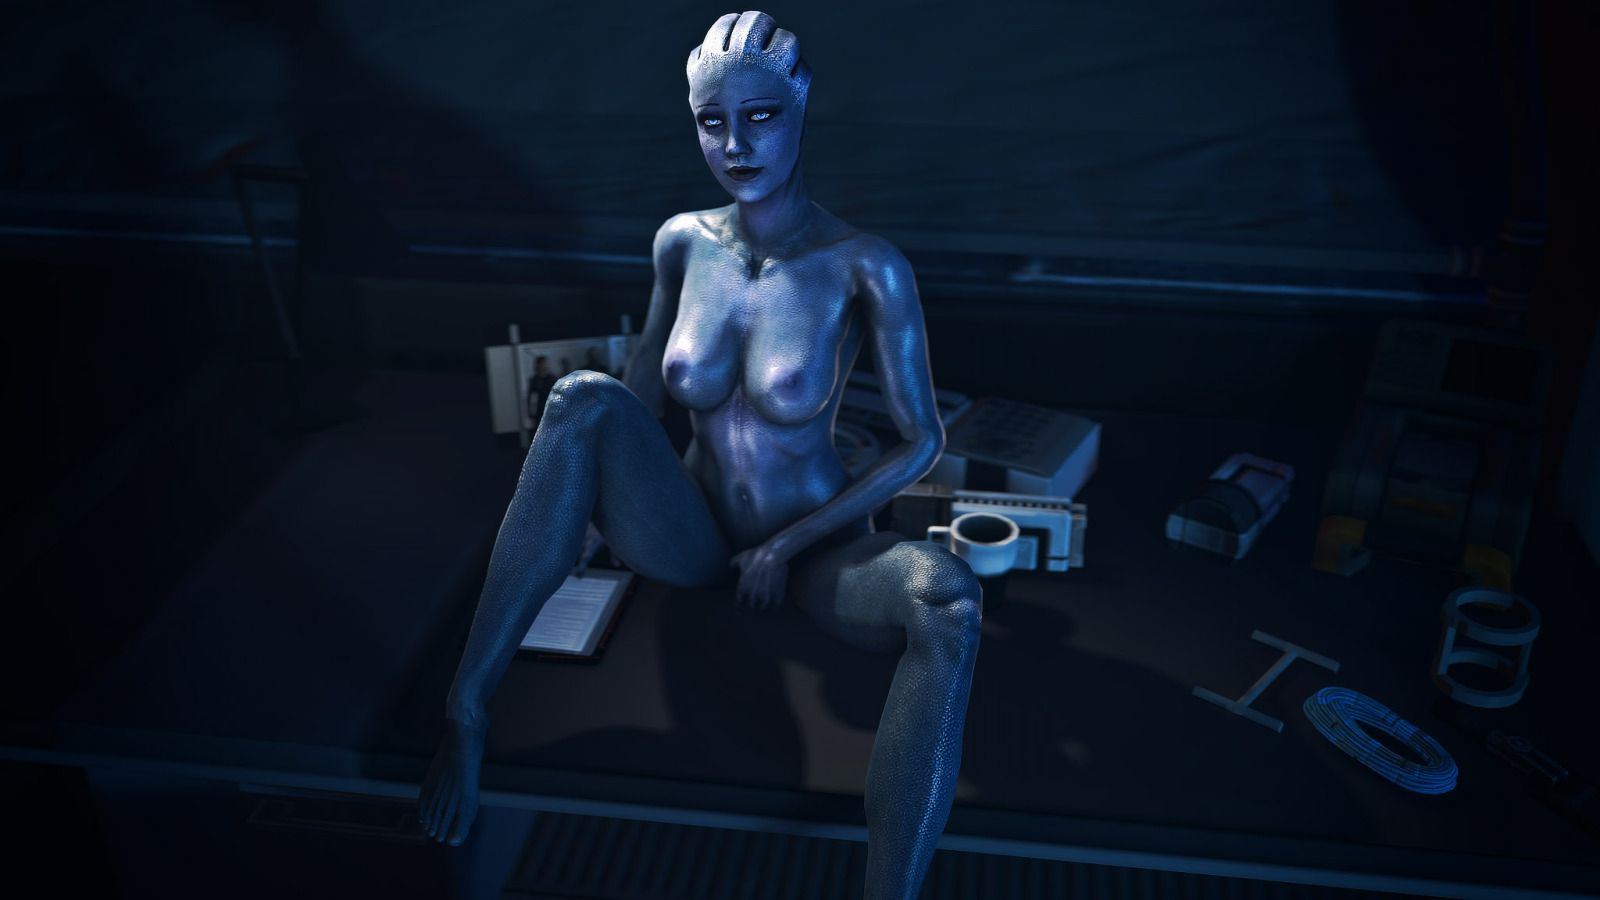 Mass effect nude pictures